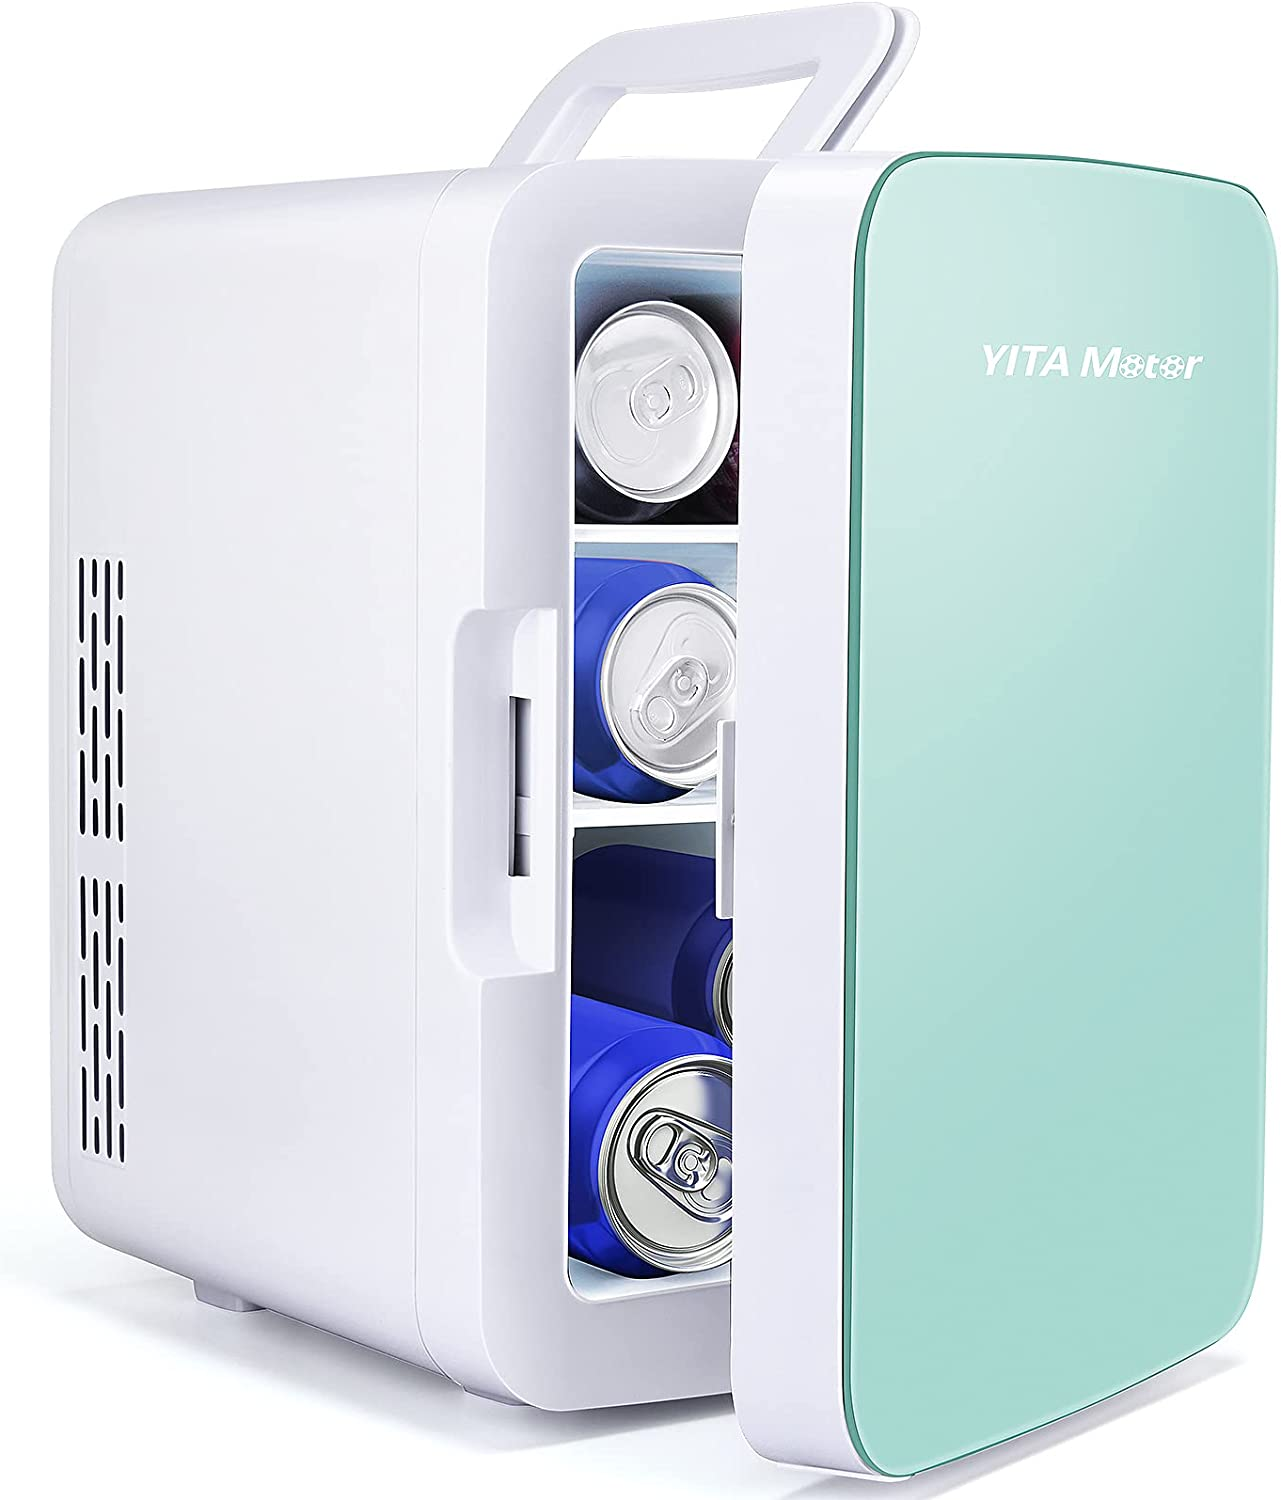 YITAMOTOR Mini Fridge 10 Liter/10 Can AC/DC Portable Compact Personal Lightweight Multiple Functional Cooler and Warmer,Great for Car,Bedroom,Office,Dorm,Travel (Green)